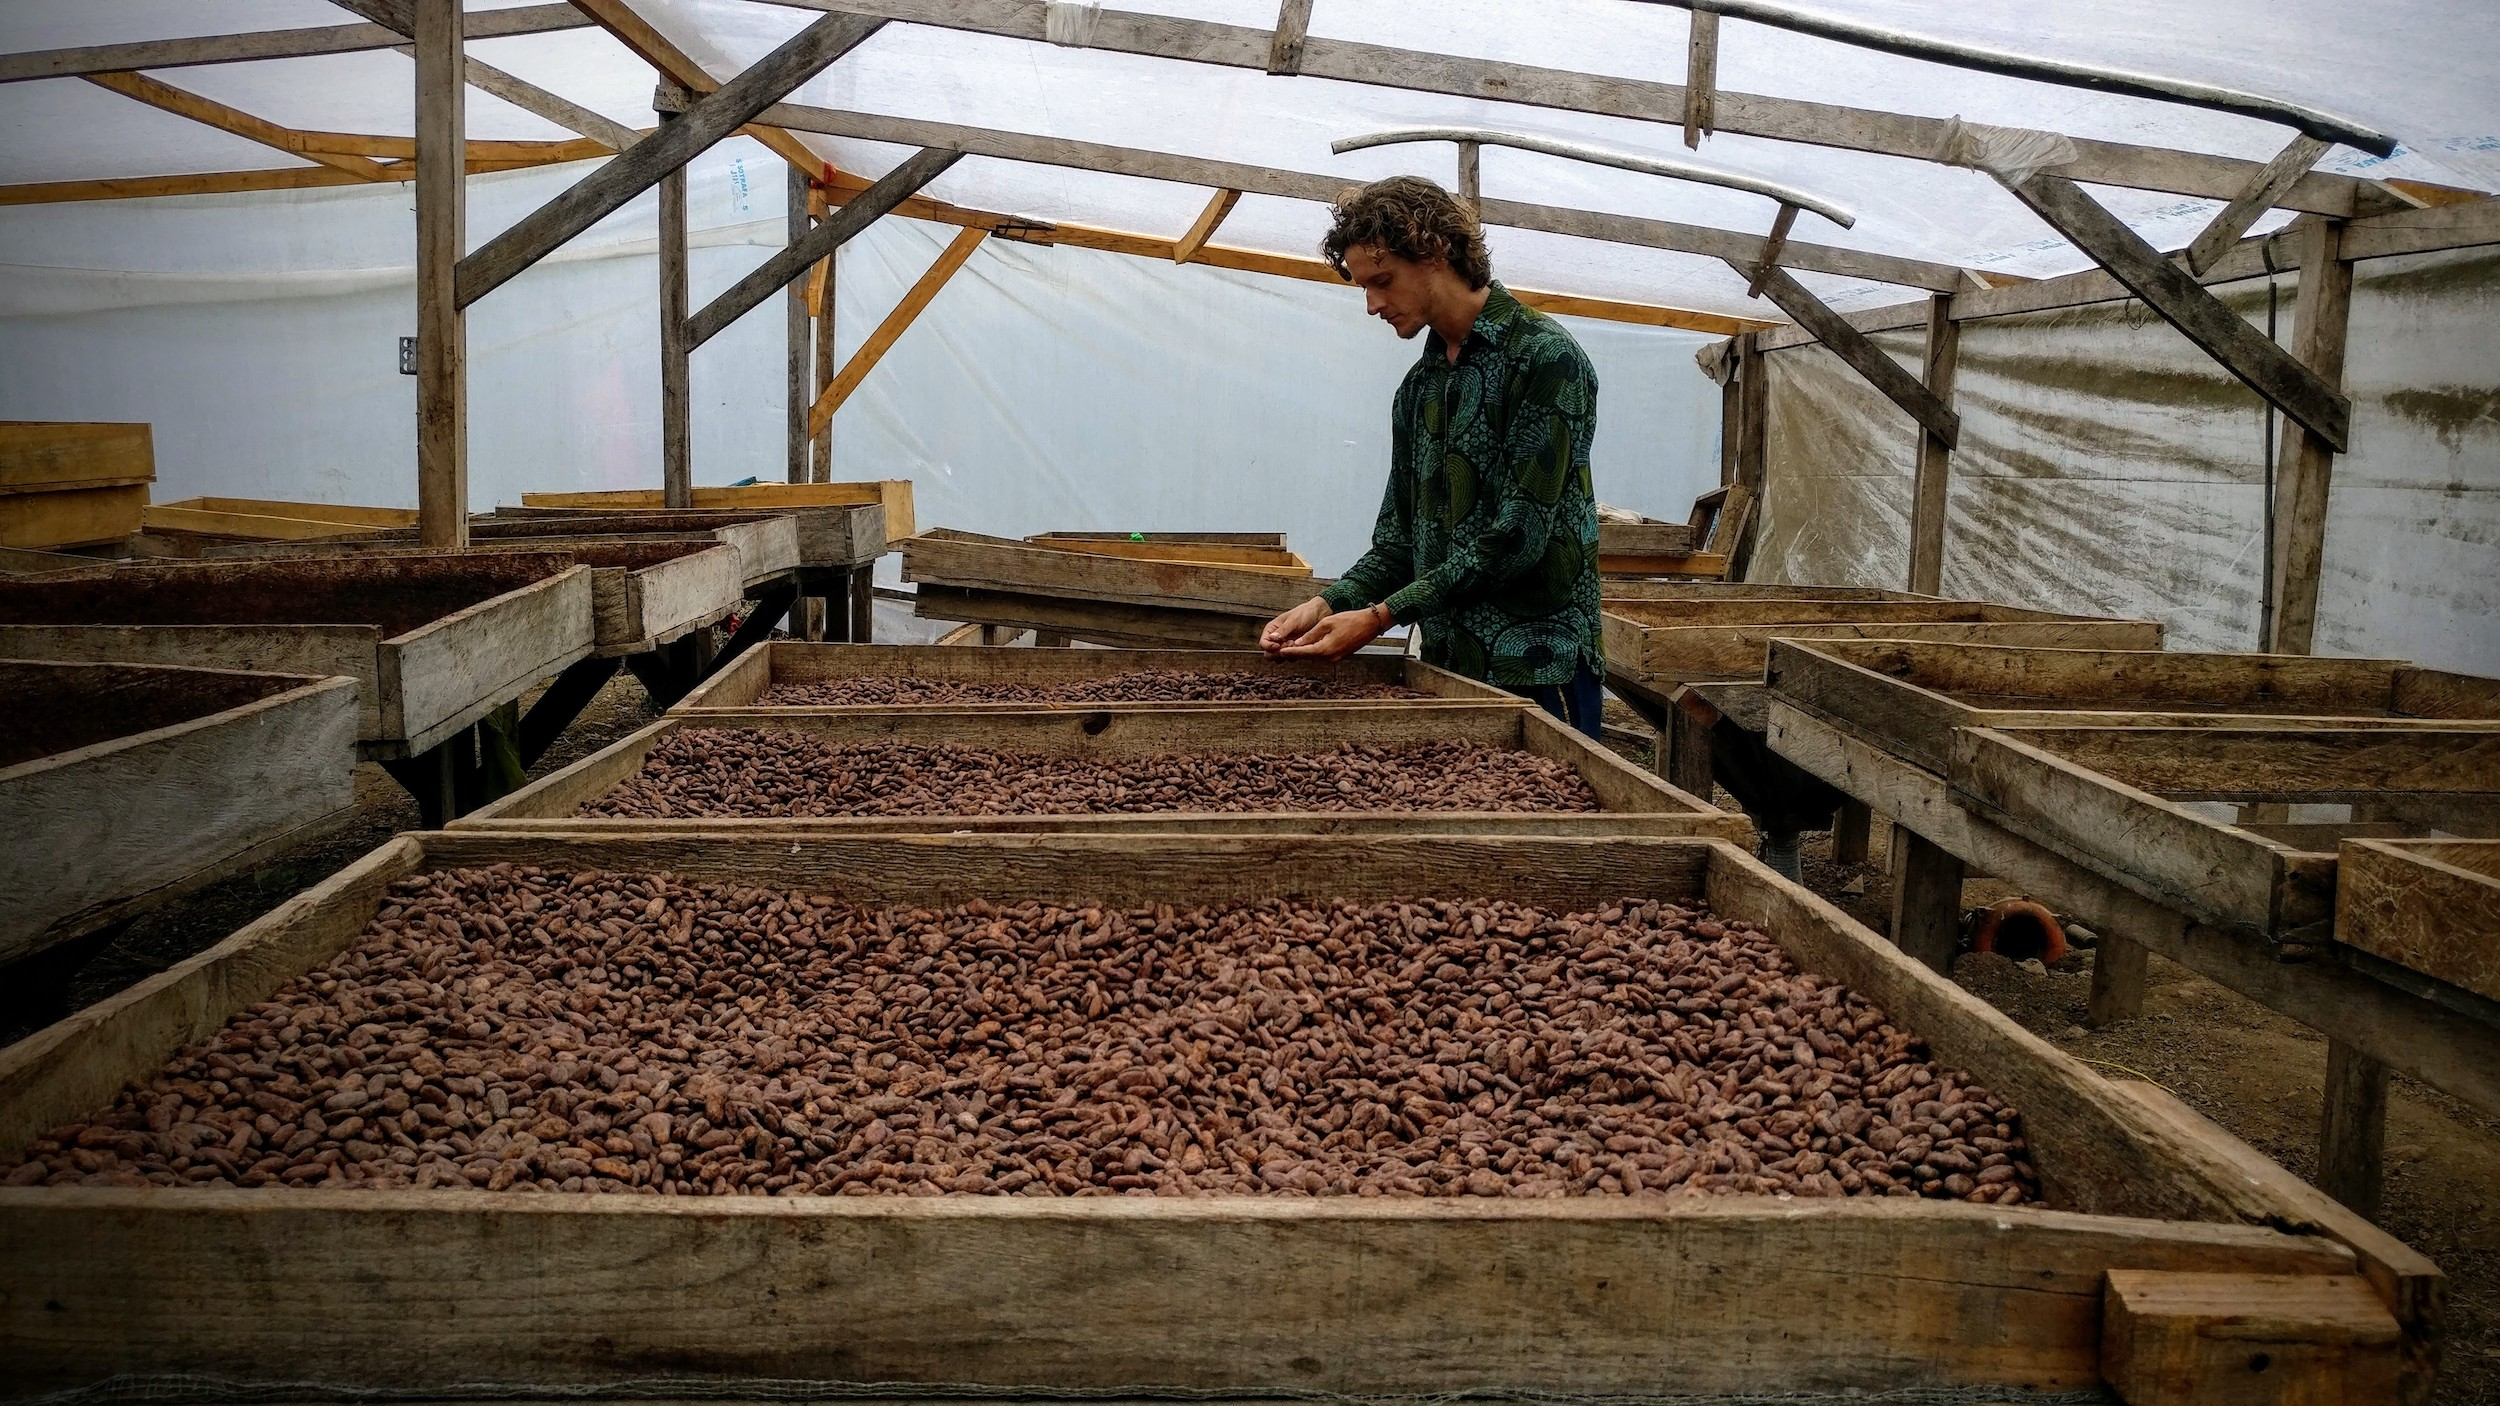 The cacao is laid out at drying decks after fermentation.